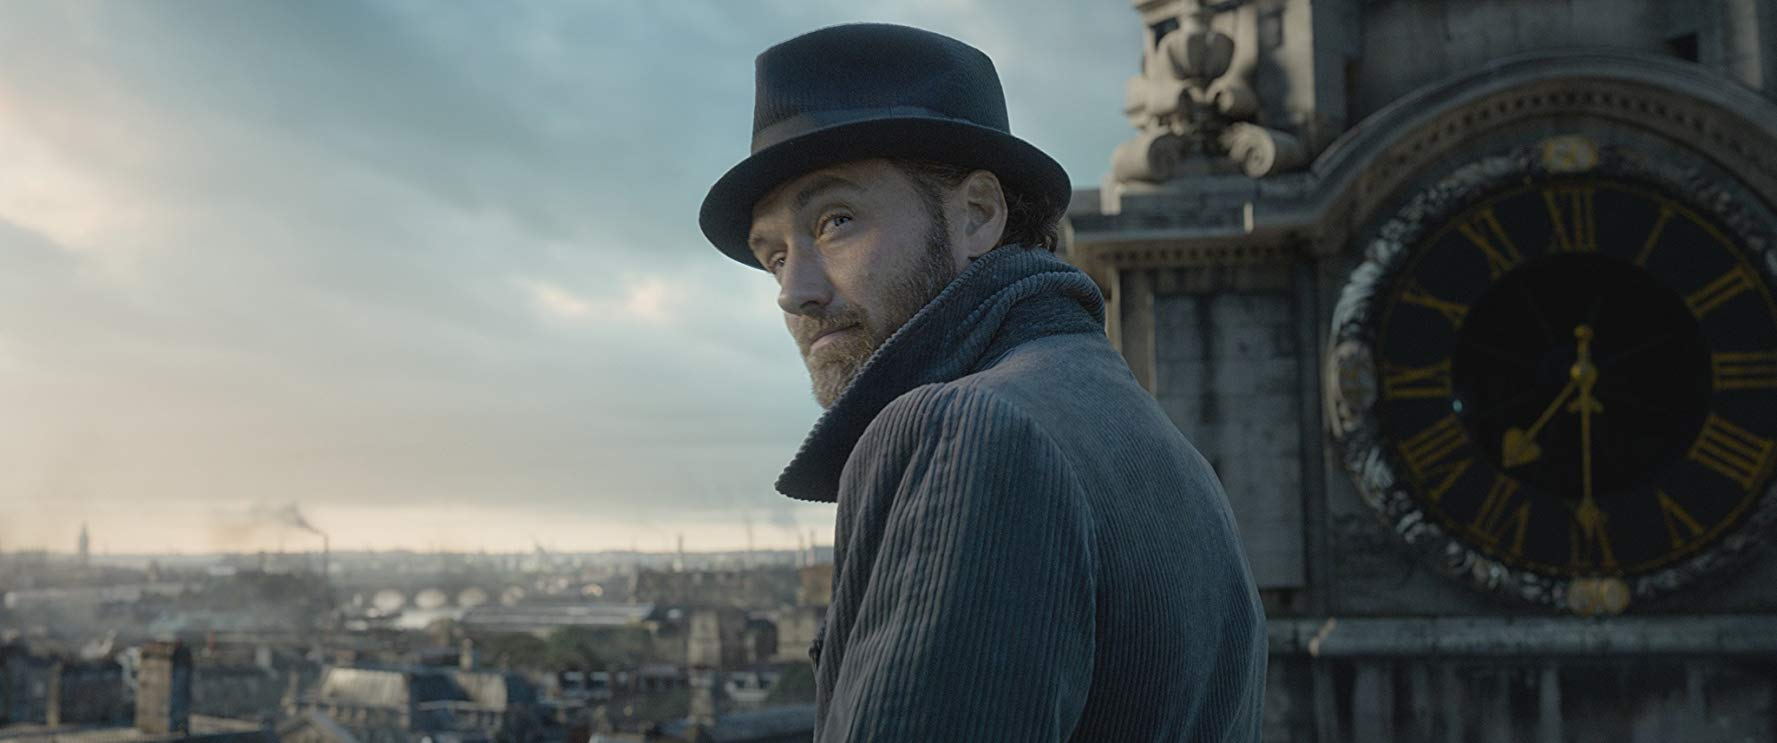 Jude Law in Fantastic Beasts: The Crimes of Grindelwald.